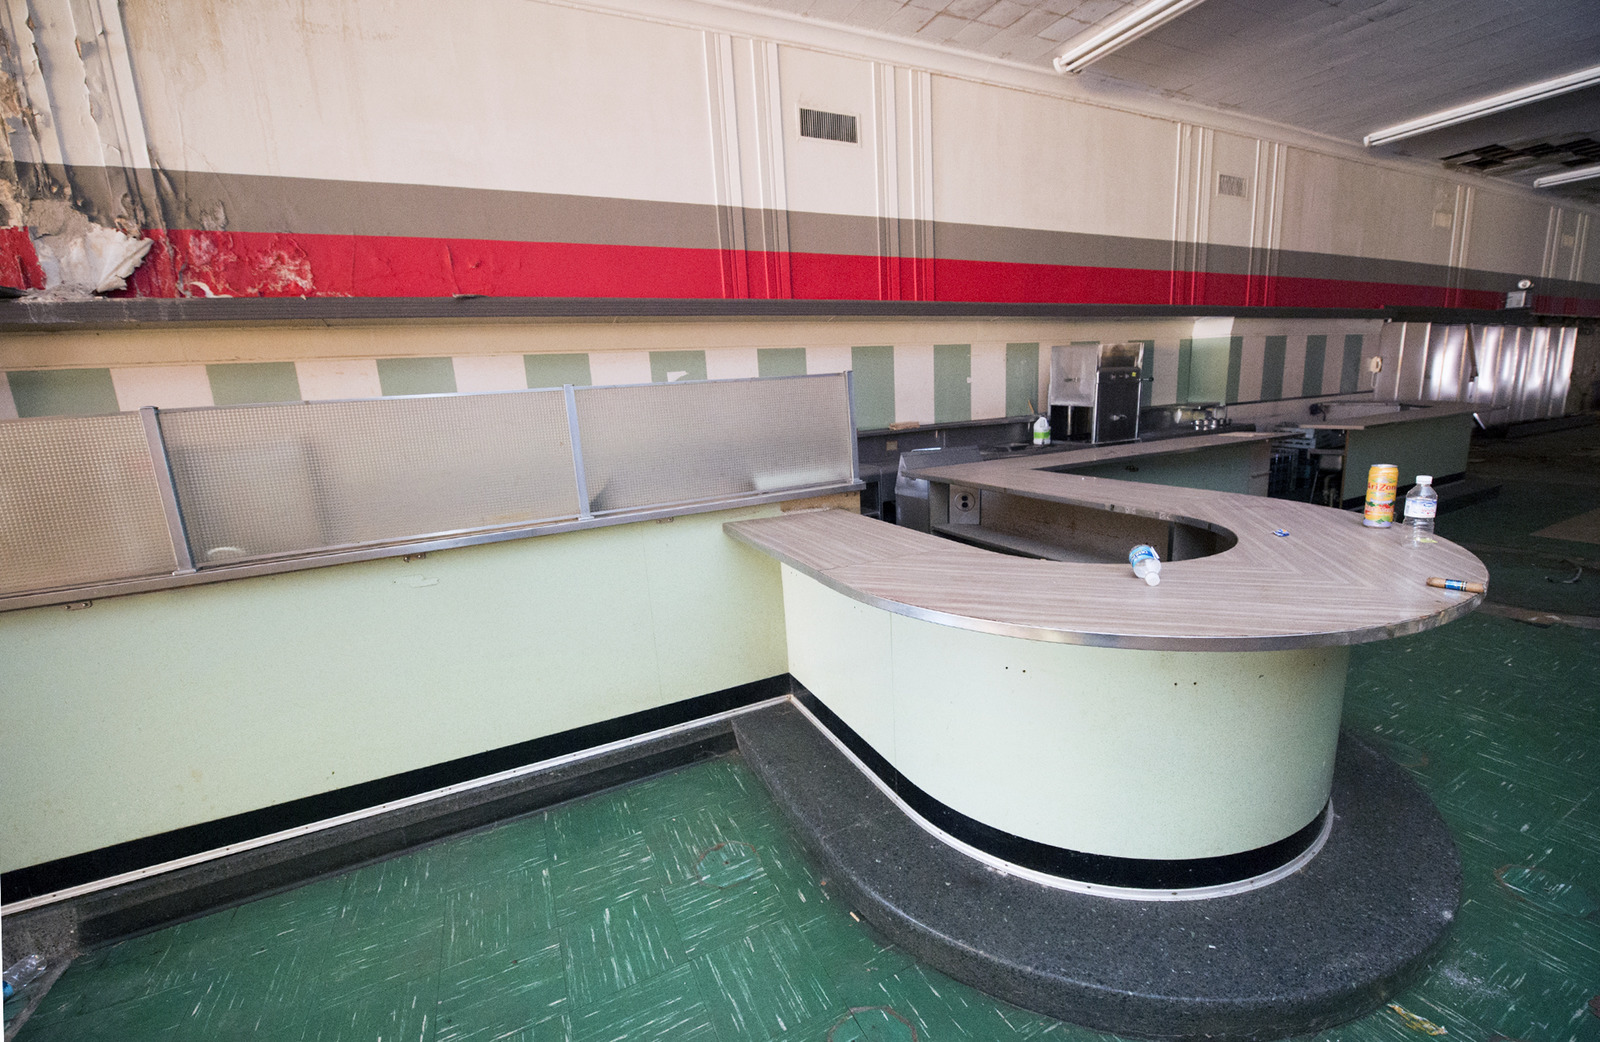 The lunch counter is still mostly intact at the former Woolworth building in the first block of West Market Street in York Tuesday September 22, 2015. Royal Square Development & Construction plans commercial space on the first floor and residential on the second floor. Paul Kuehnel - York Daily Record/ Sunday News